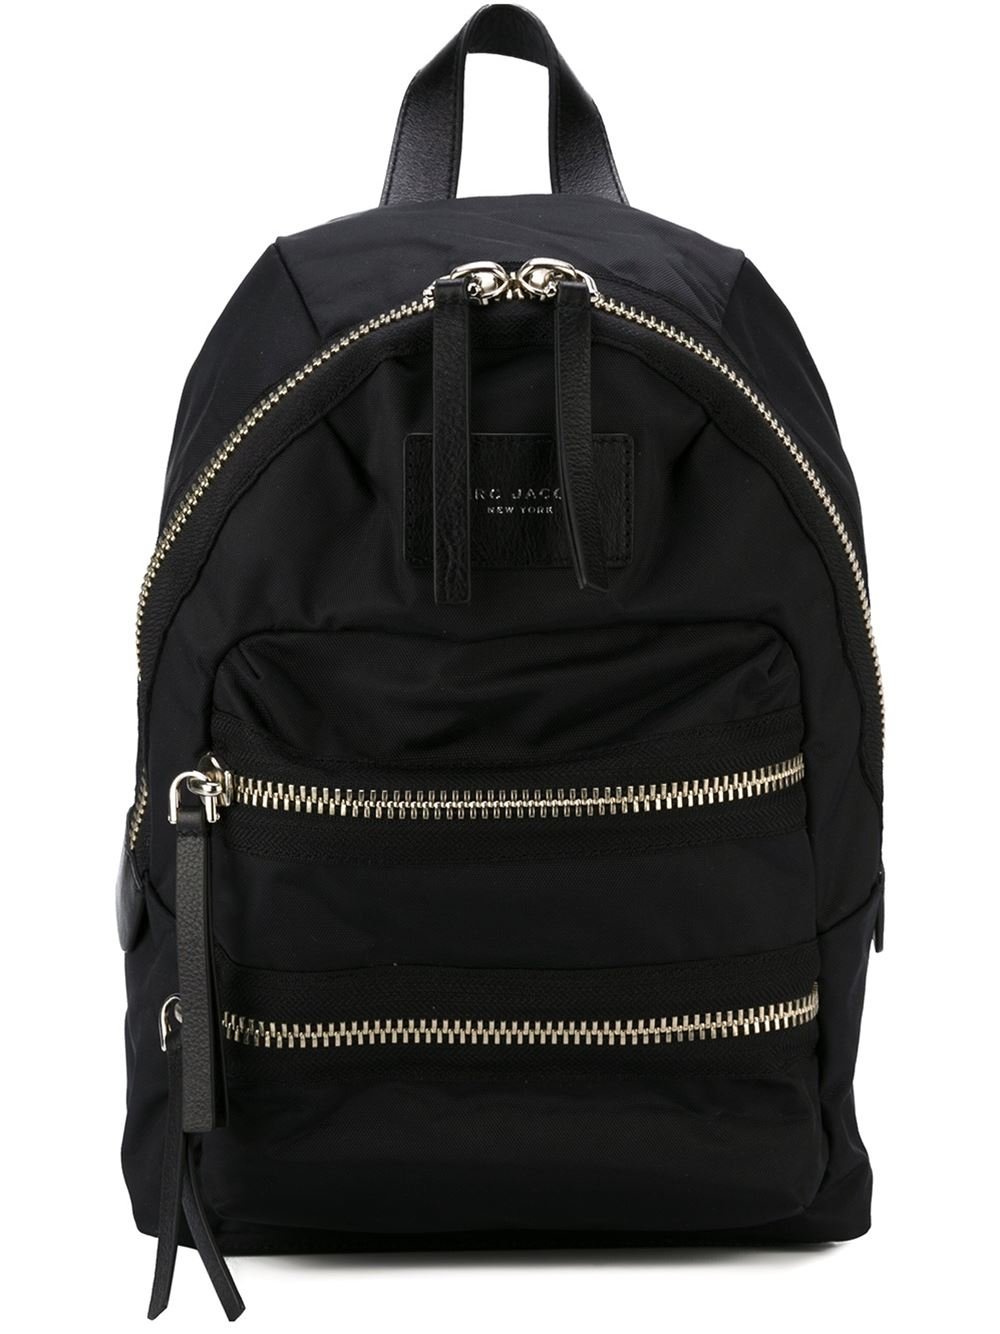 marc jacobs 39 biker 39 backpack in black lyst. Black Bedroom Furniture Sets. Home Design Ideas